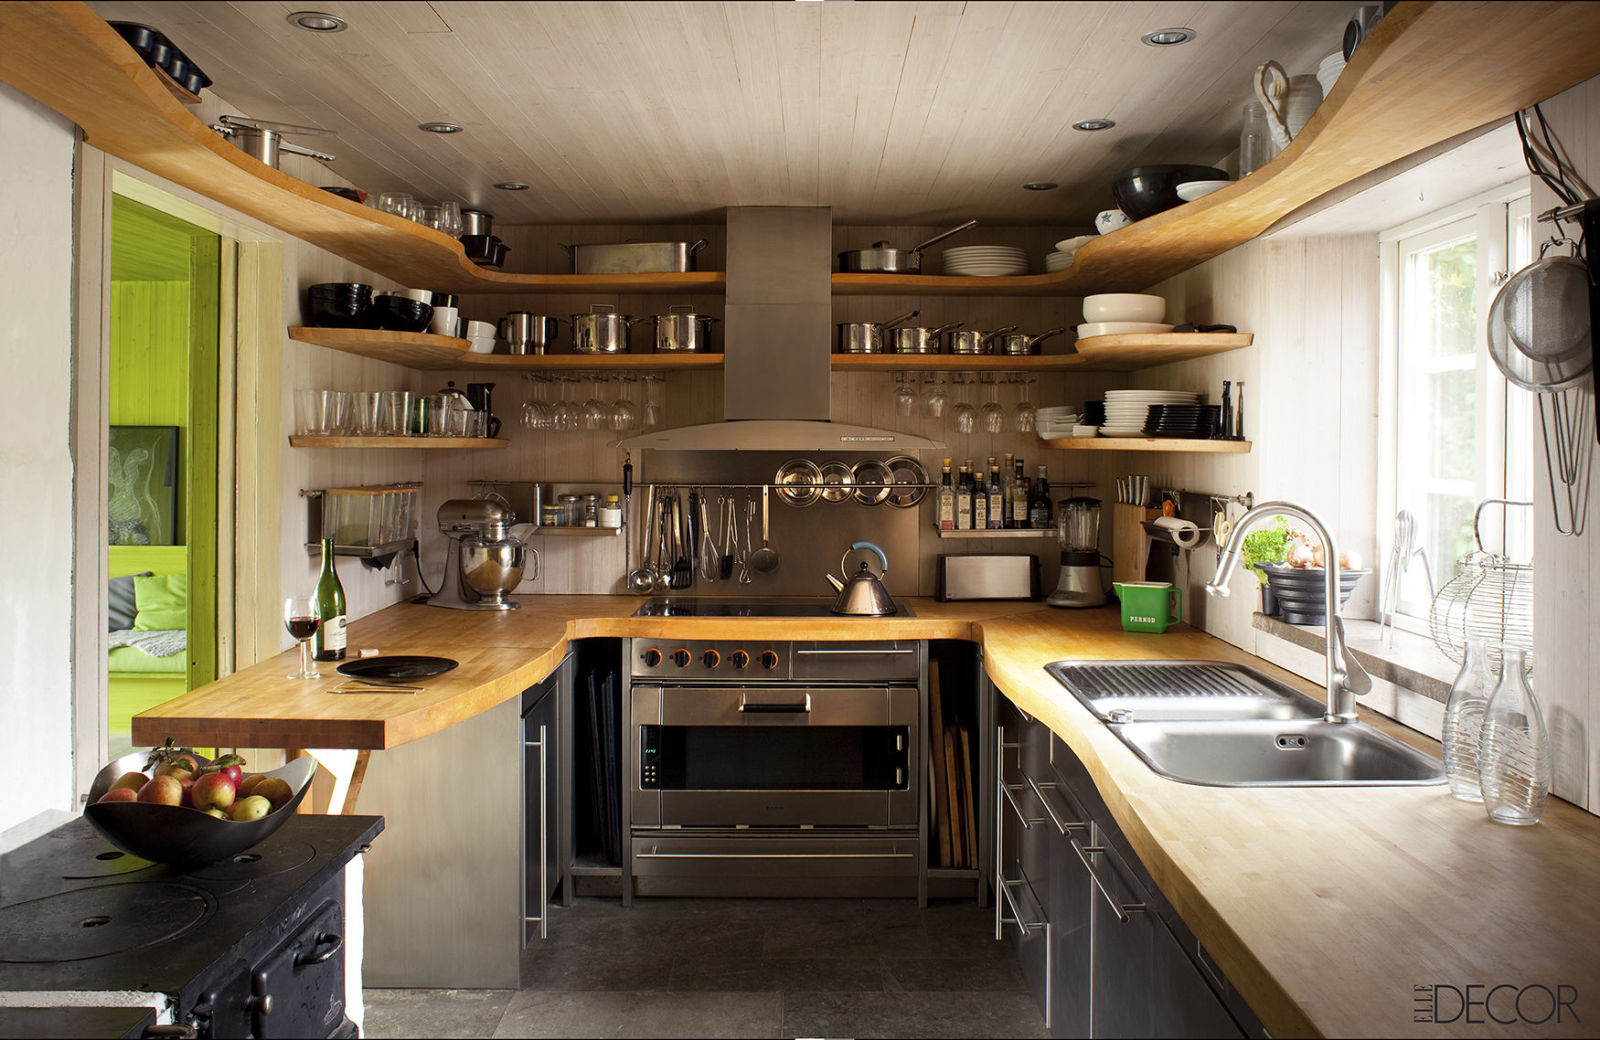 30 small kitchen design ideas decorating tiny kitchens